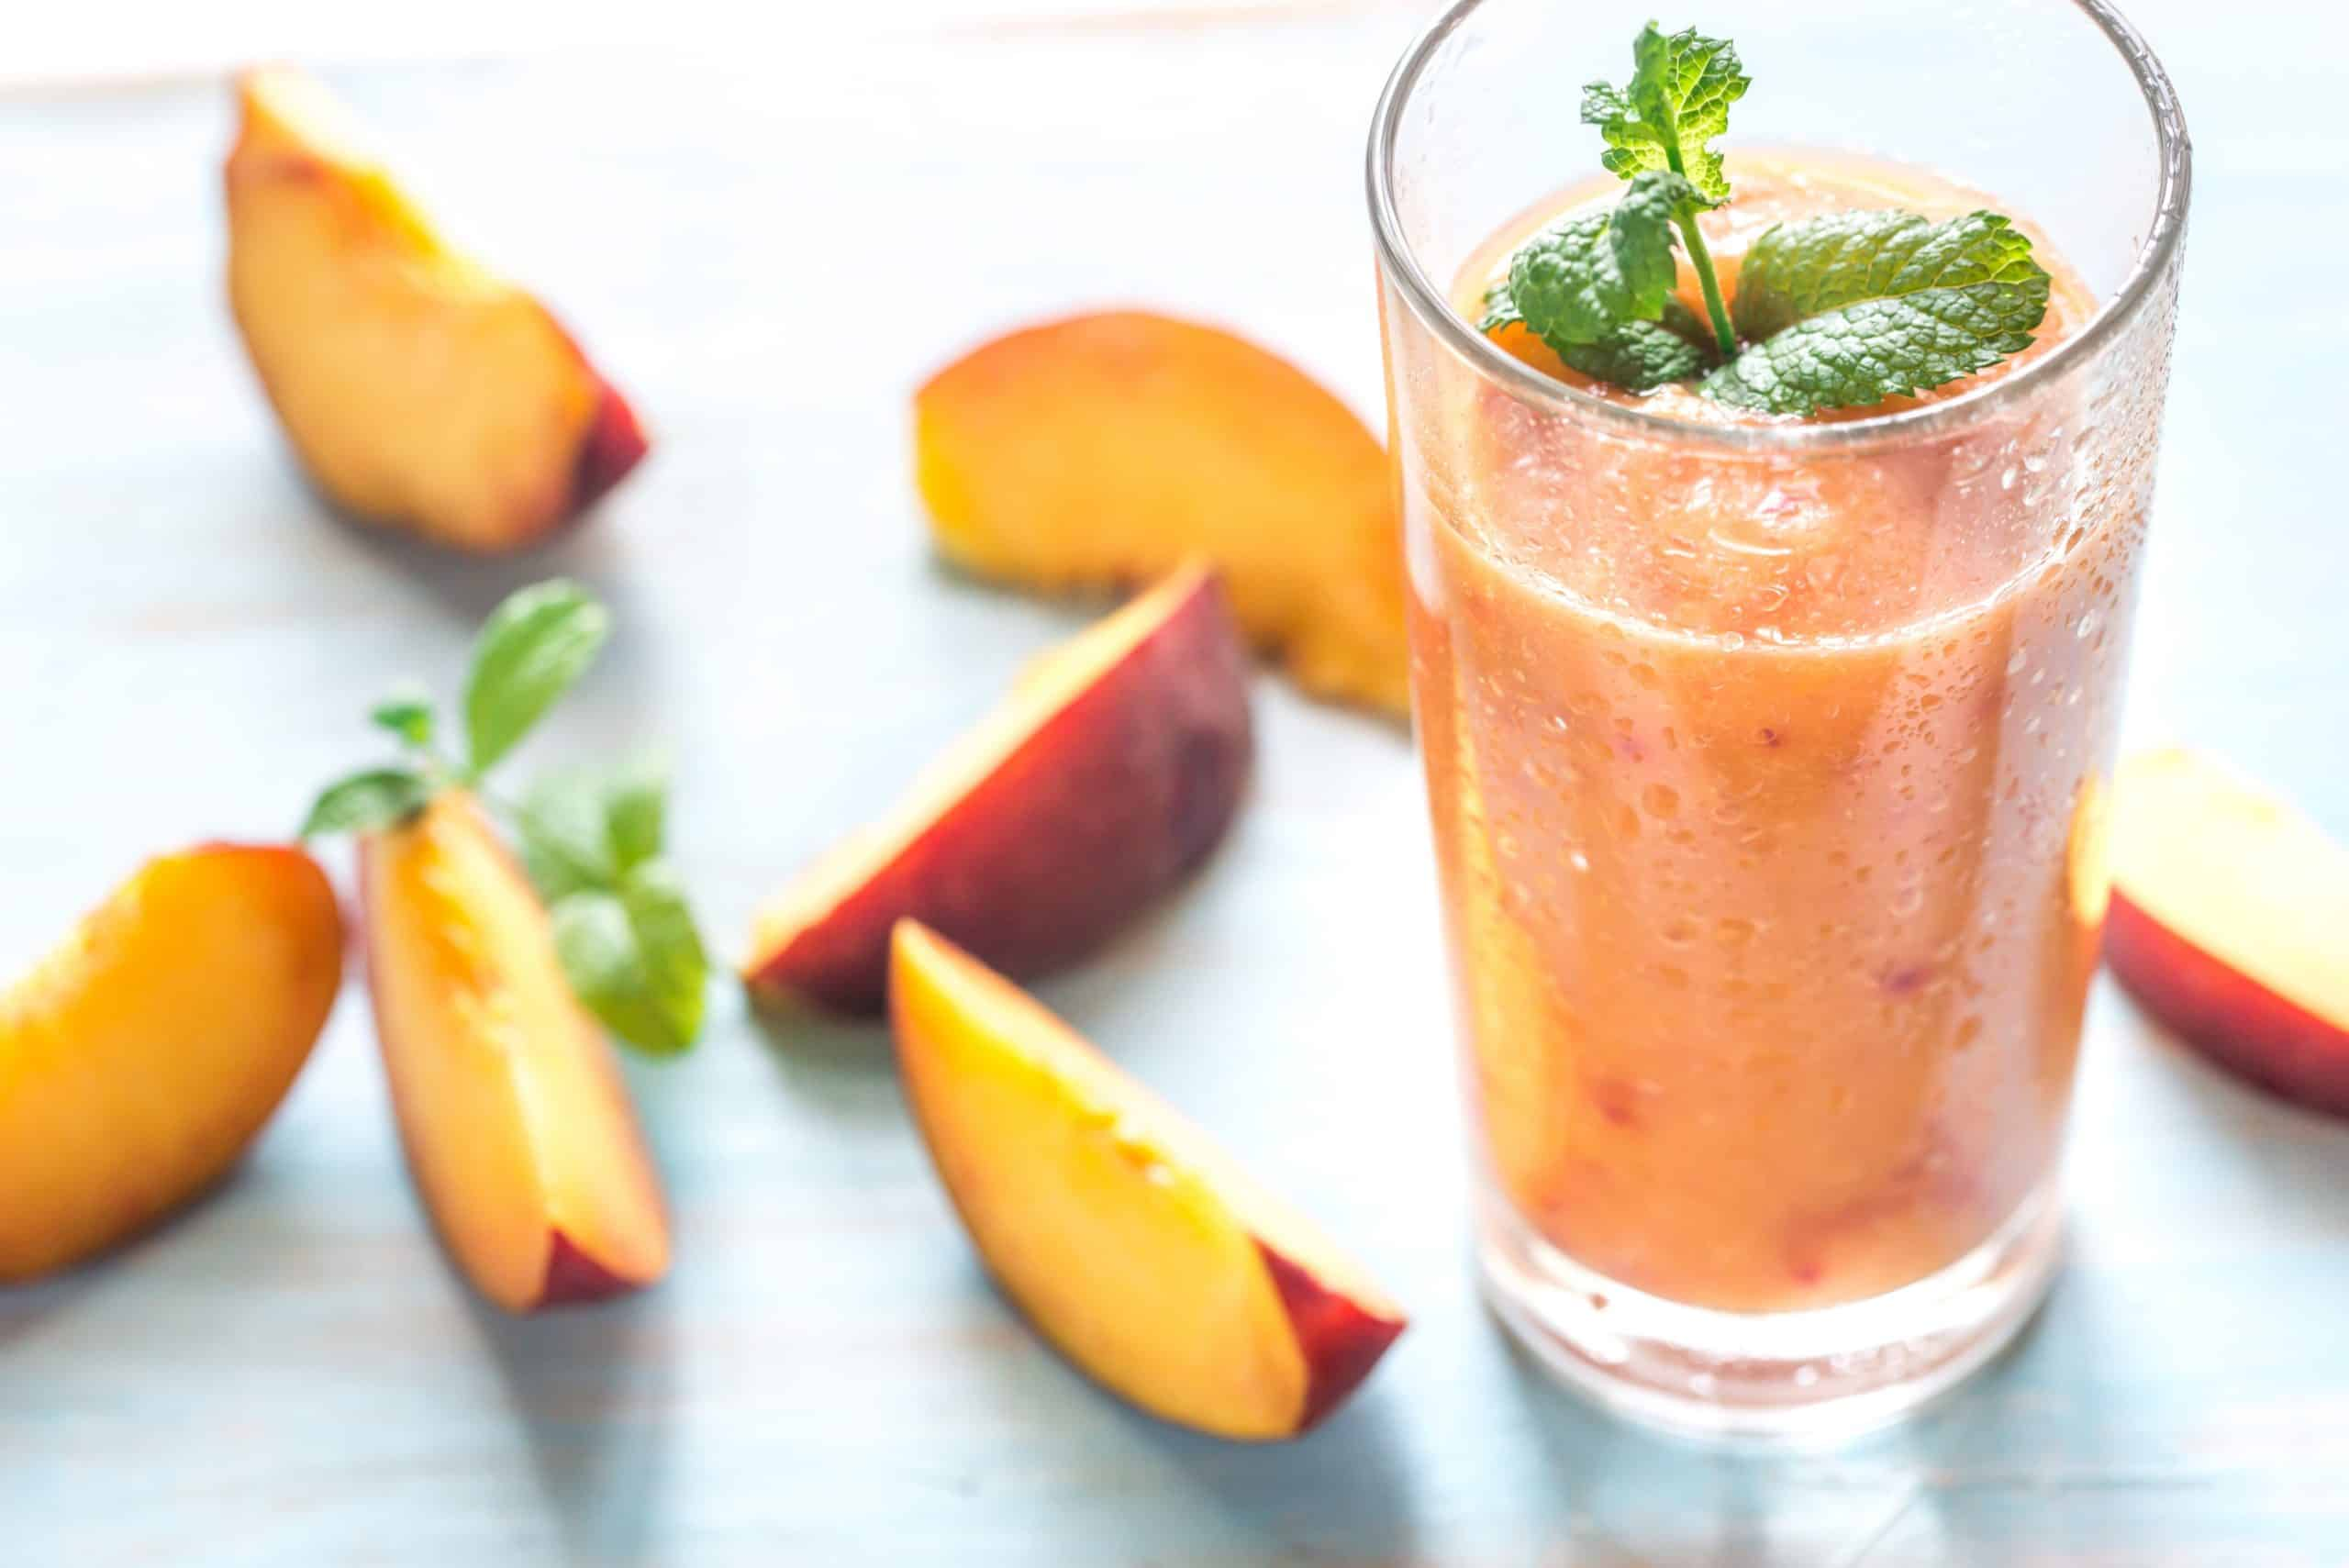 5 Types of Ingredients to Make Healthy Smoothies